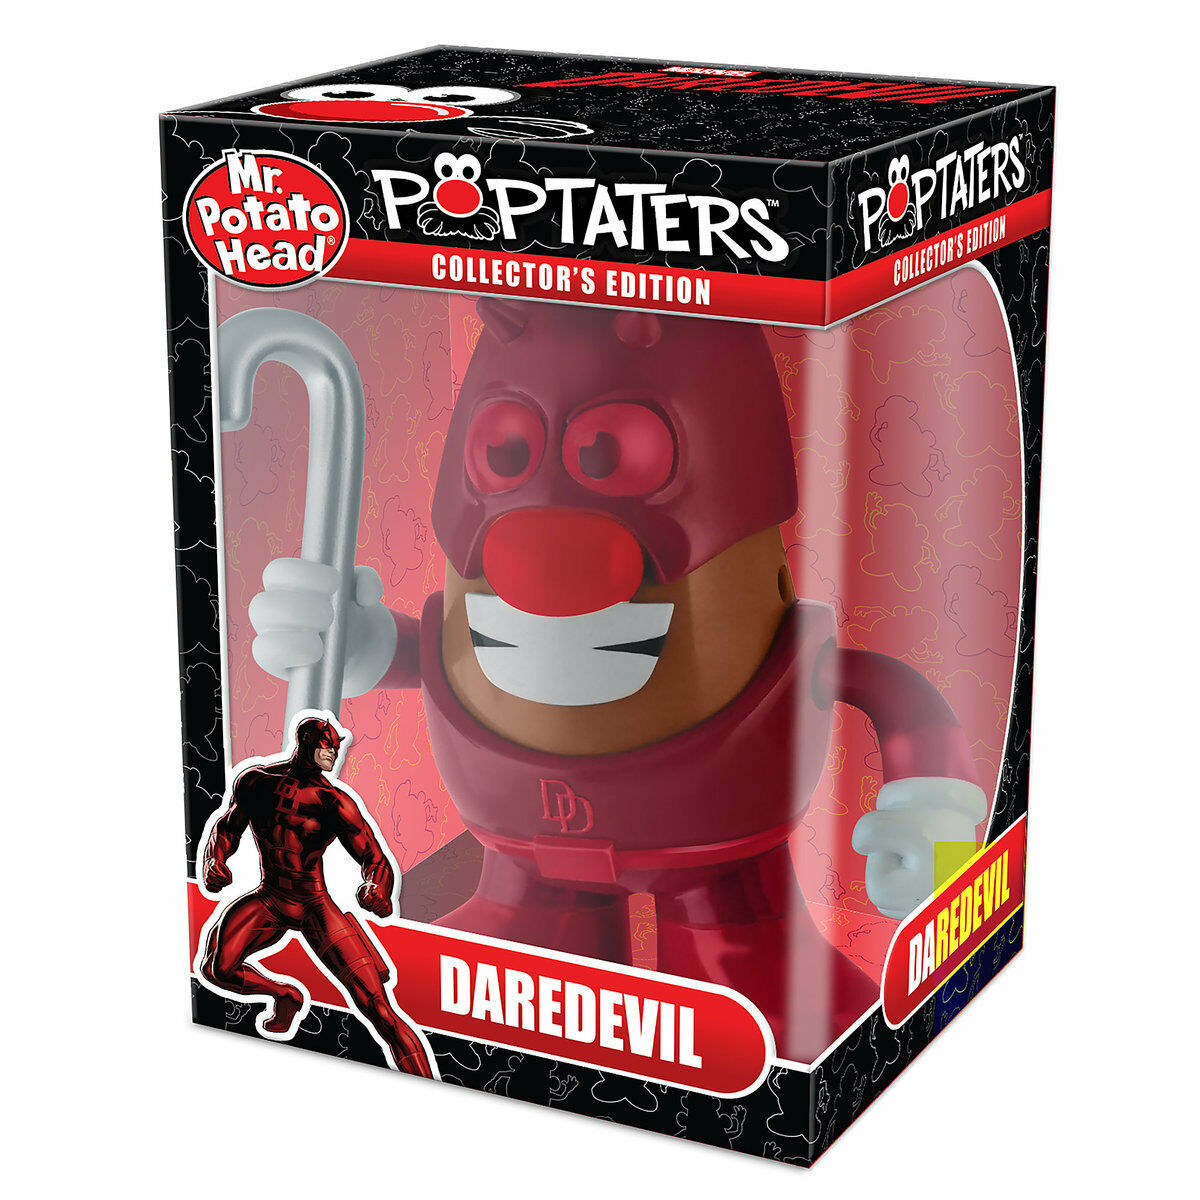 Mr. Potato Head POPTATER Daredevil Dare Devil NIB Potatohead